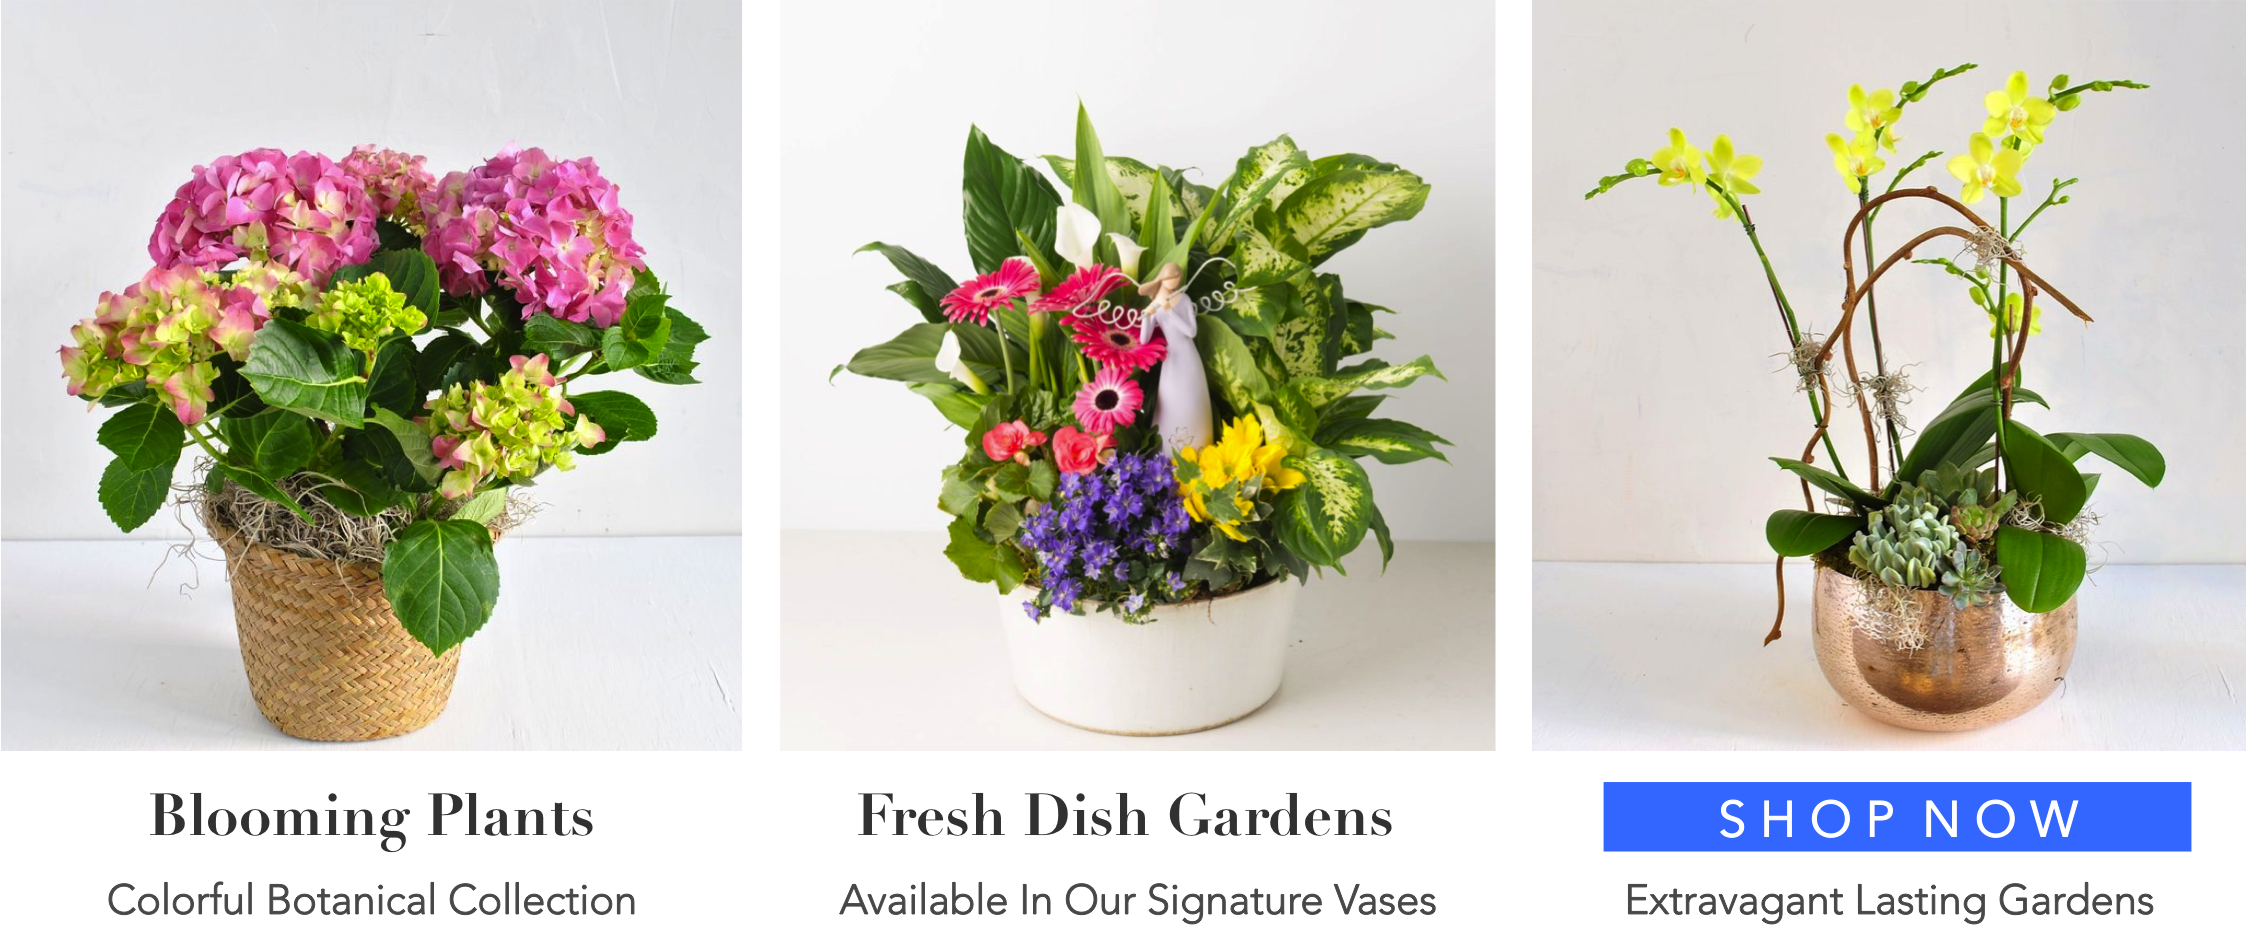 0-angies-floral-design-fresh-plants-dish-gardens-79912-handcrafted-gifts-same-day-delivery-roses-flowershop-el-paso-texas-79912-shop-online-flowers-florist-best-florist.png